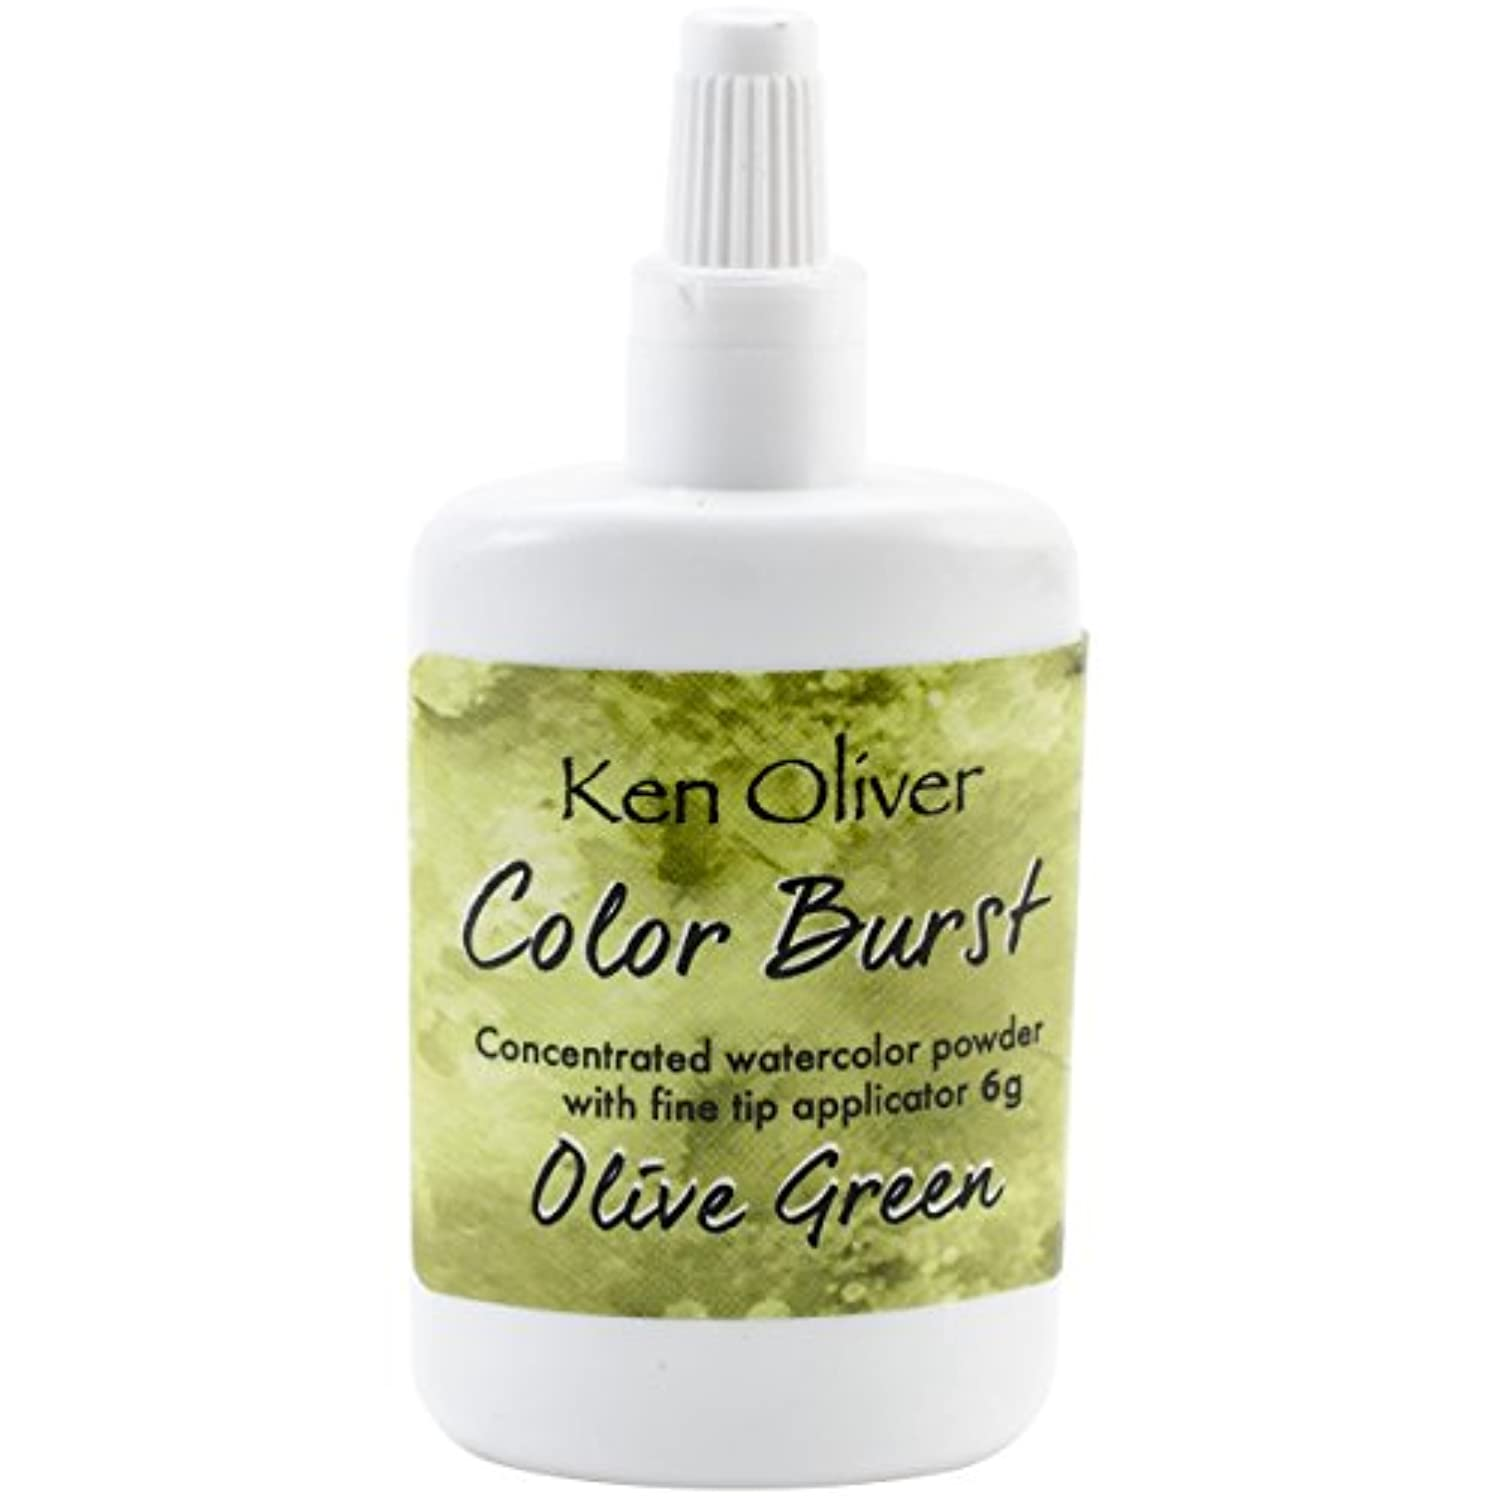 Ken Oliver KN07045 Color Burst Powder 6gm-Olive Green,